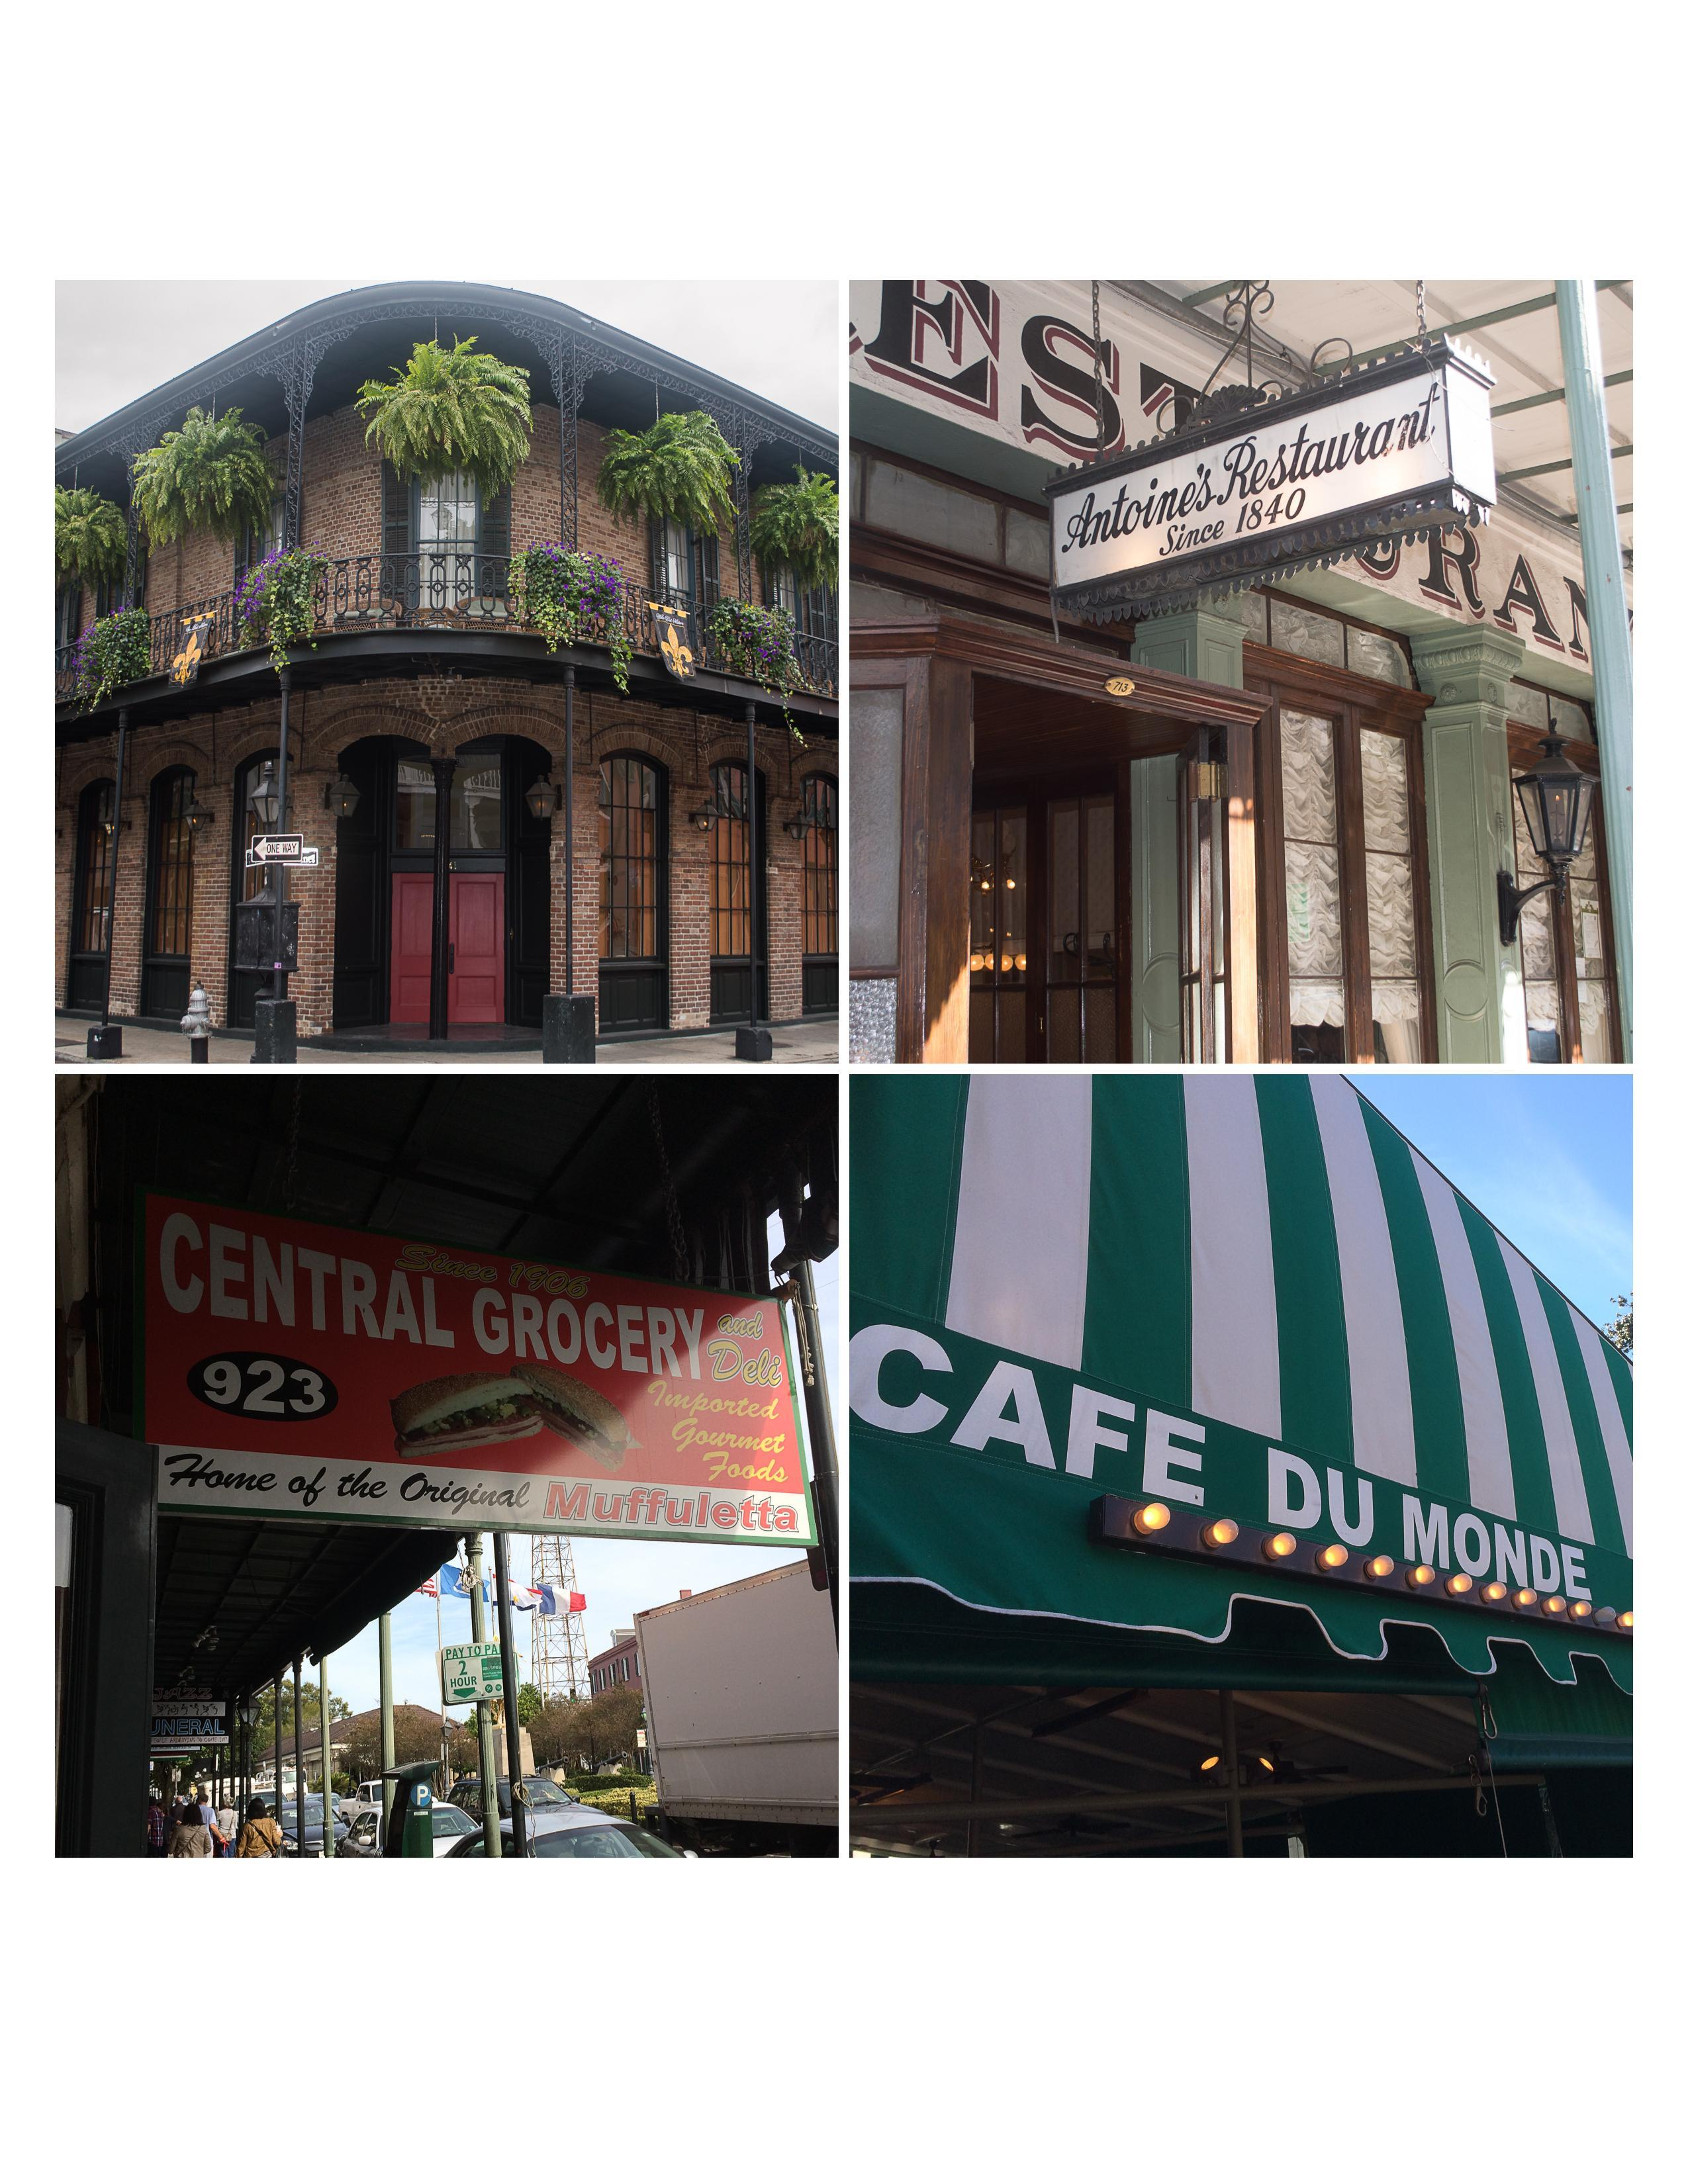 New Orleans: An Important Food City